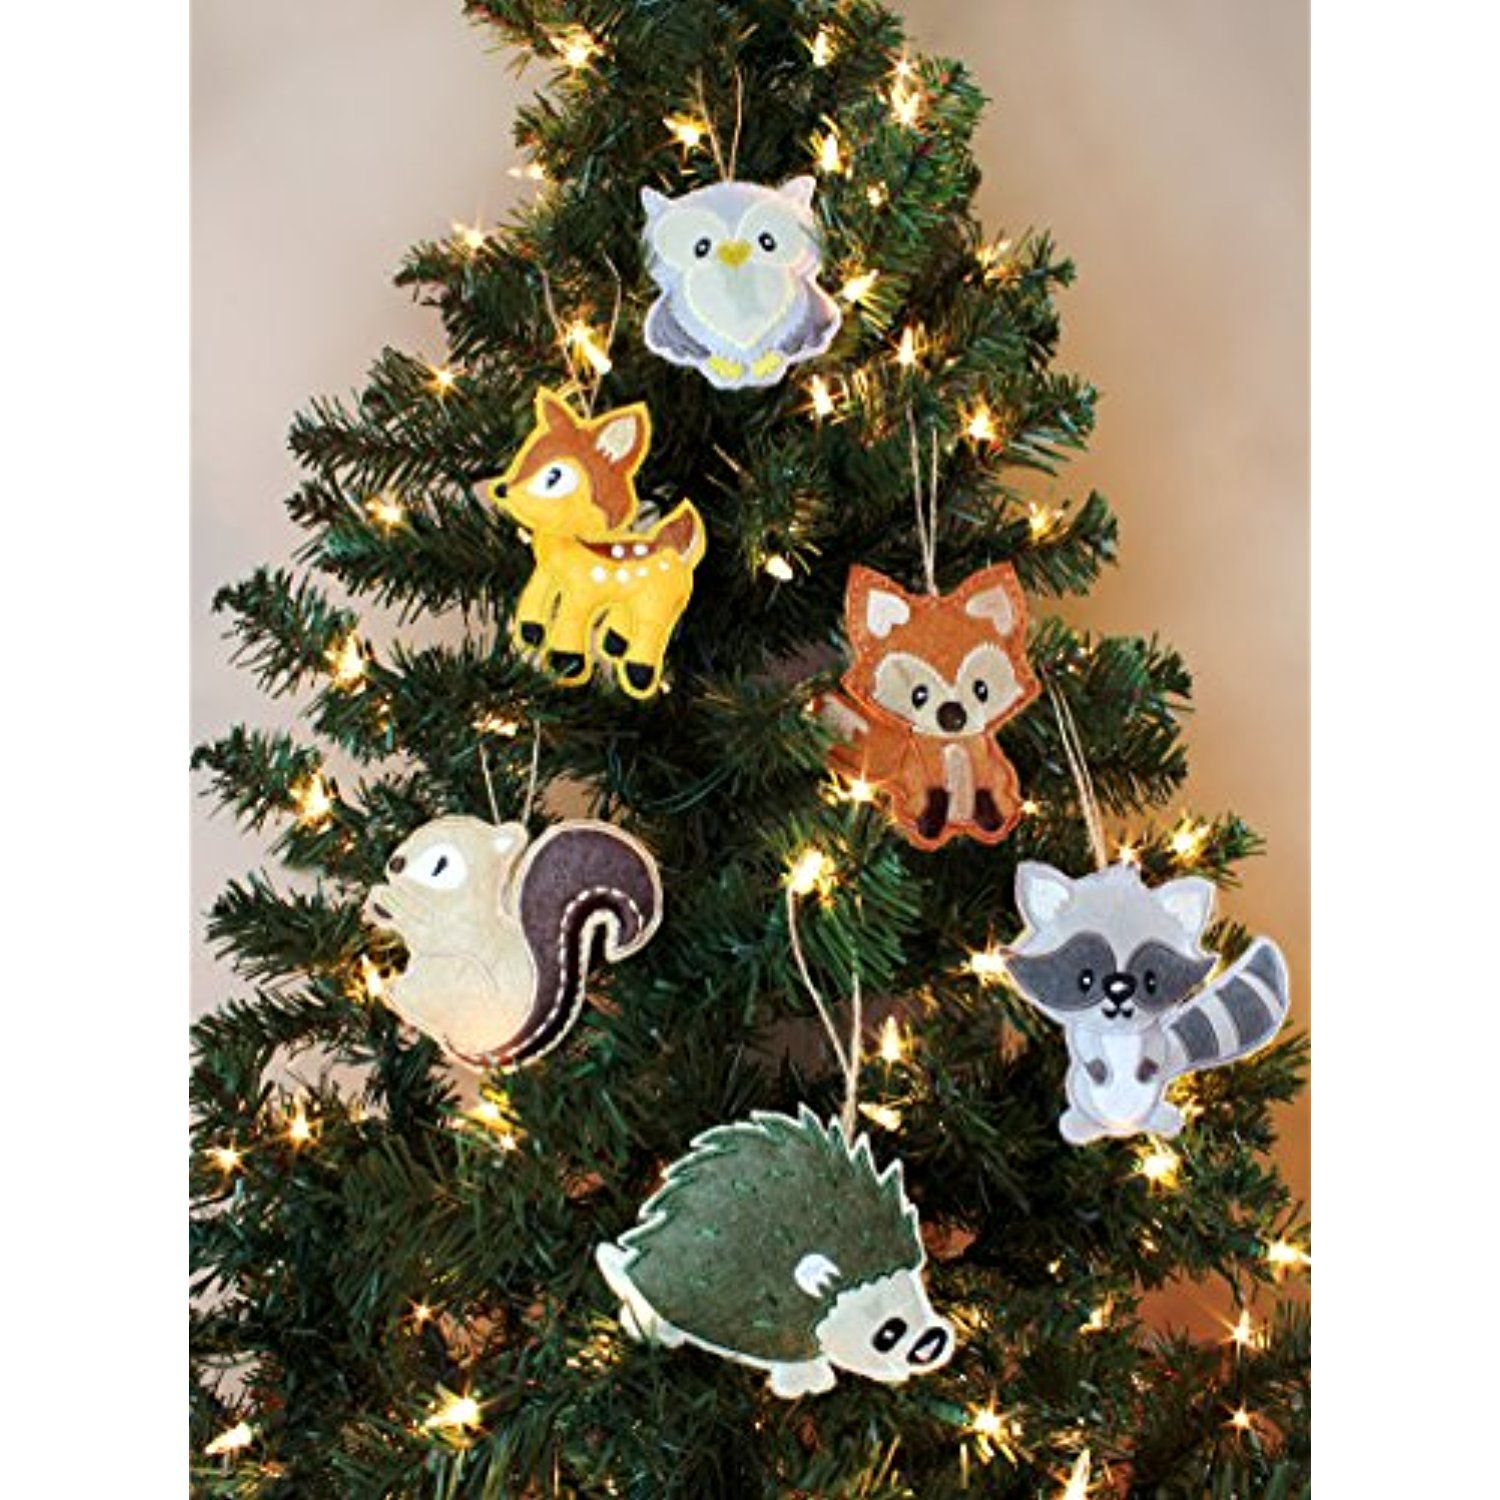 my forest friends christmas ornament set 6 piece set plush holiday animal tree decoration set with baby woodland creatures fox raccoon squirrel